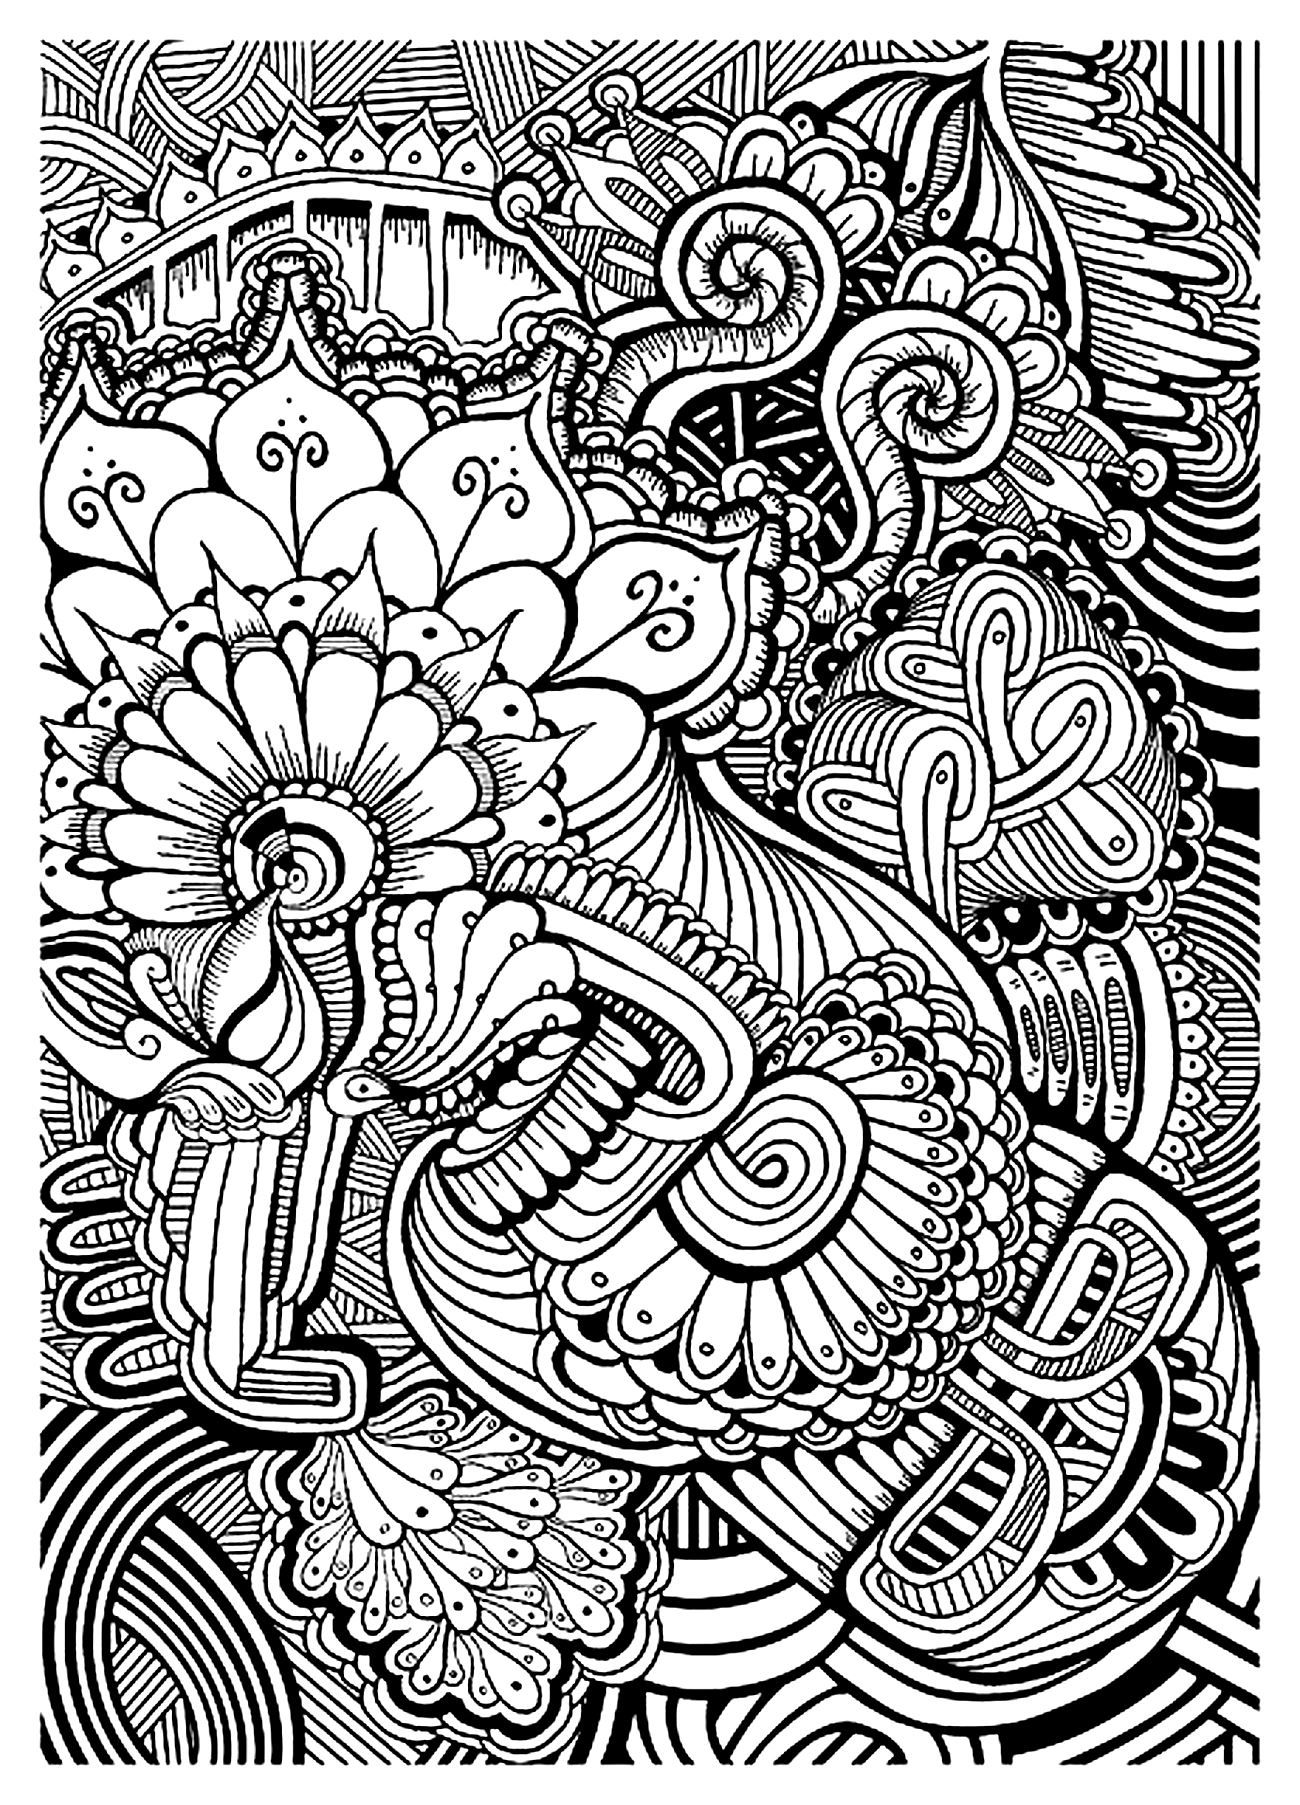 98 Top Free Zen Coloring Pages For Adults Download Free Images